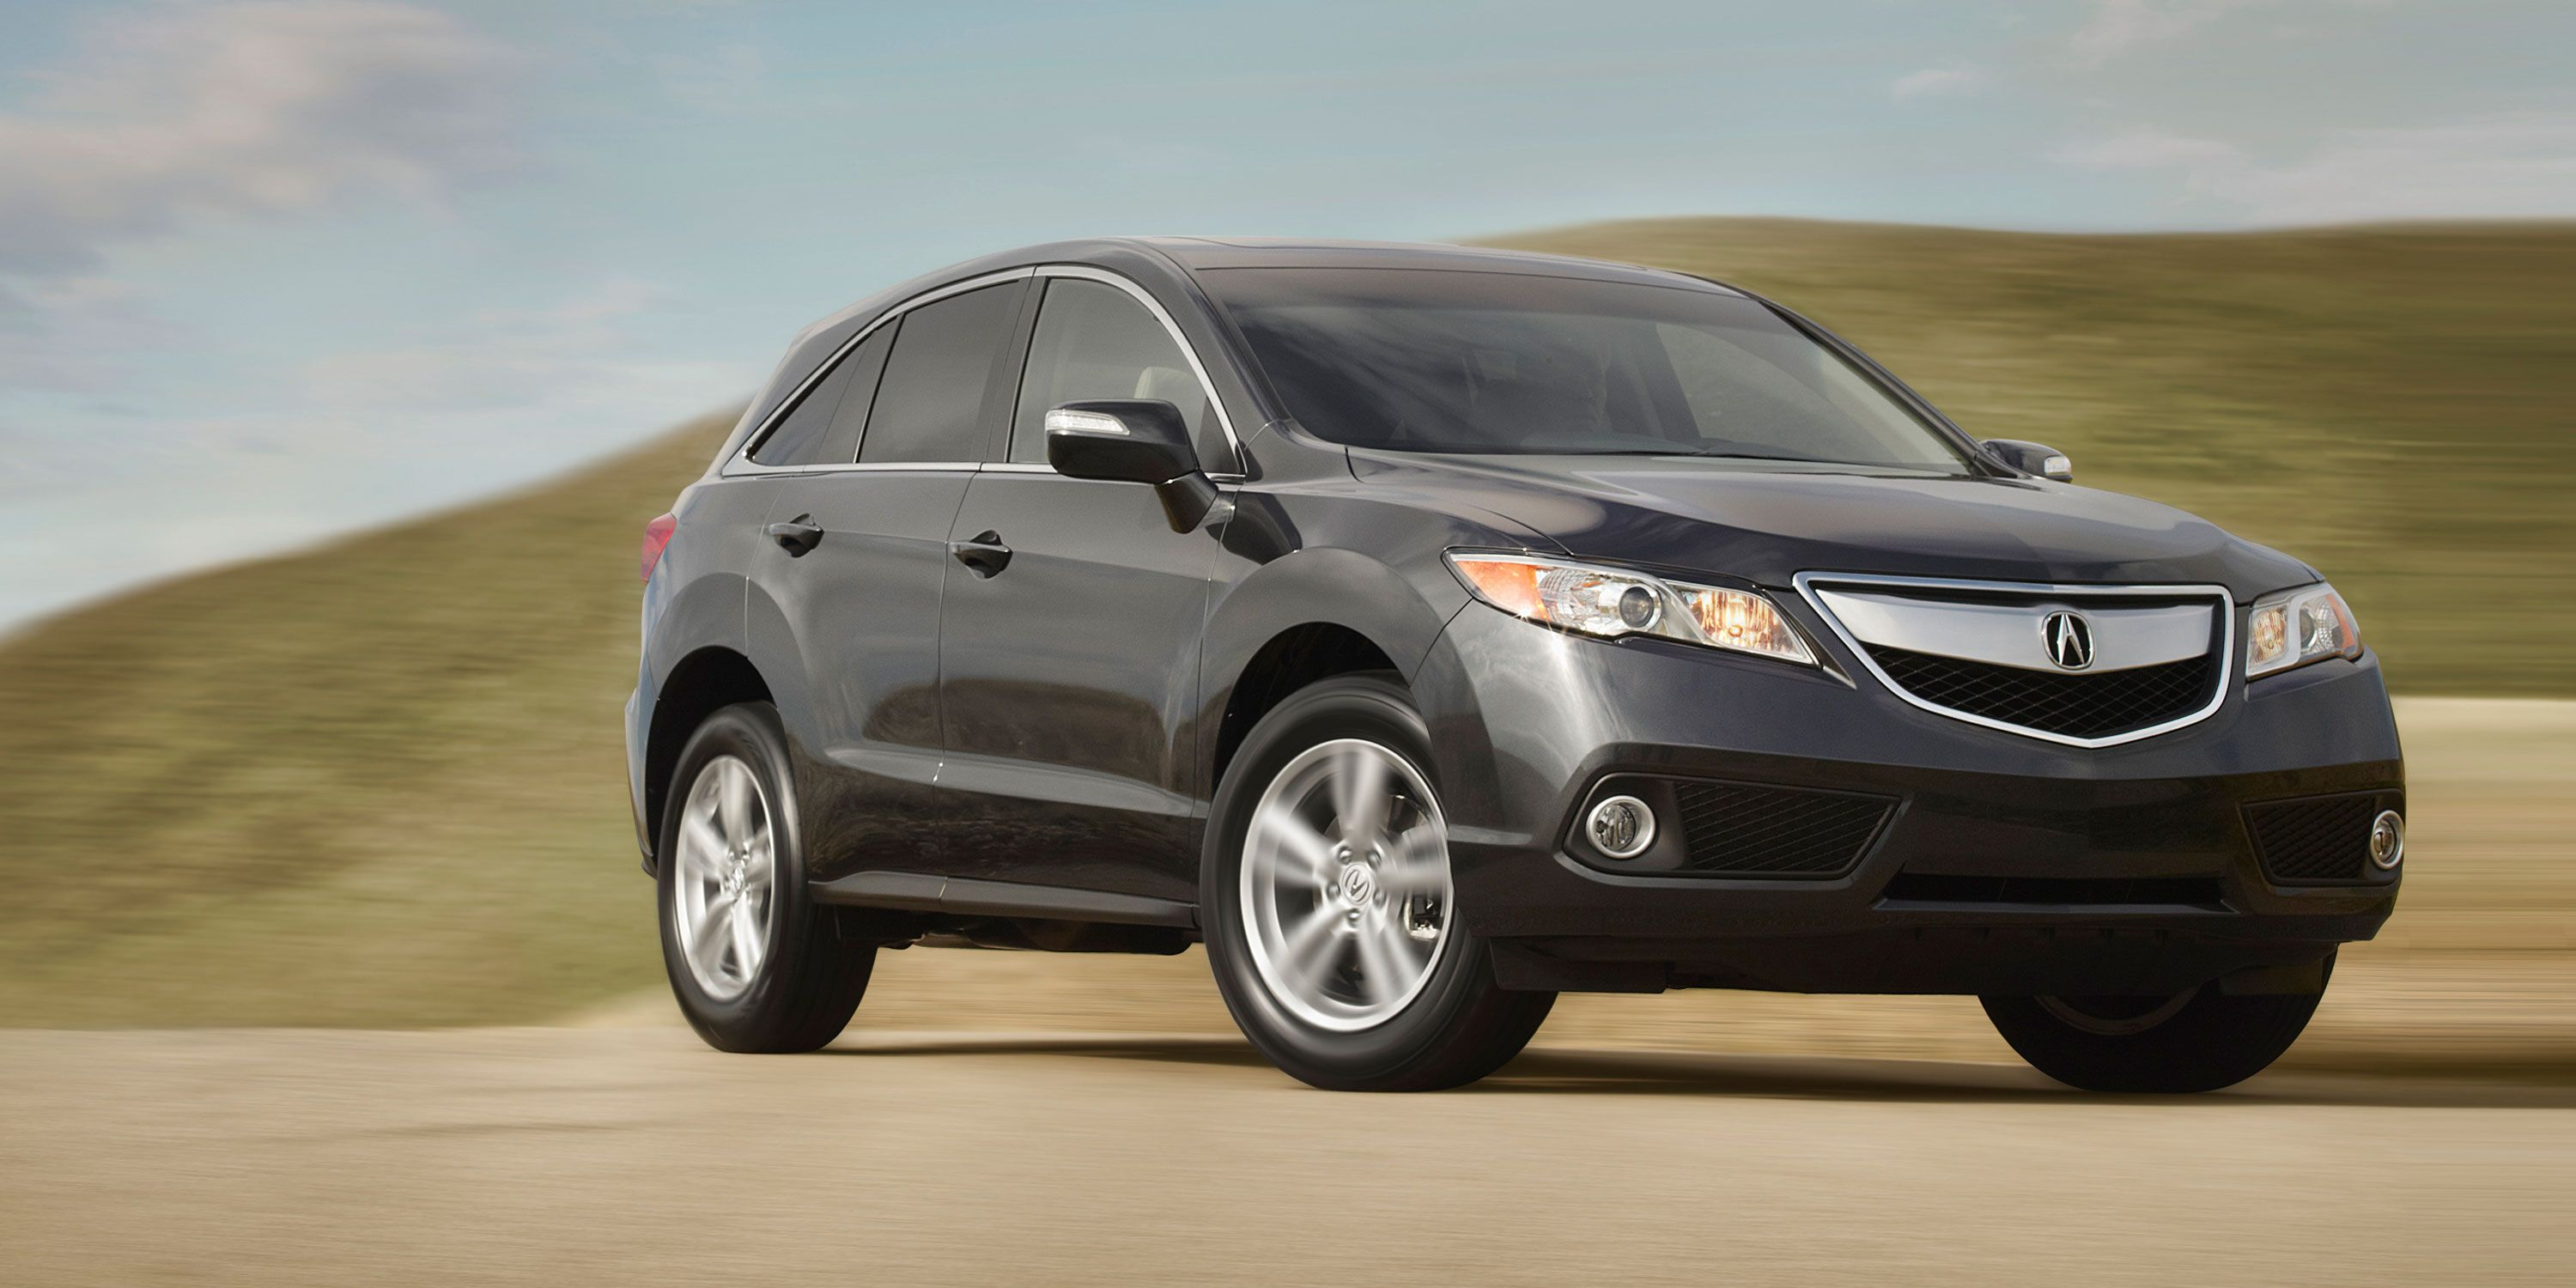 Rdx With Technology Package In Crystal Black Pearl Acura Rdx Technology Package Acura